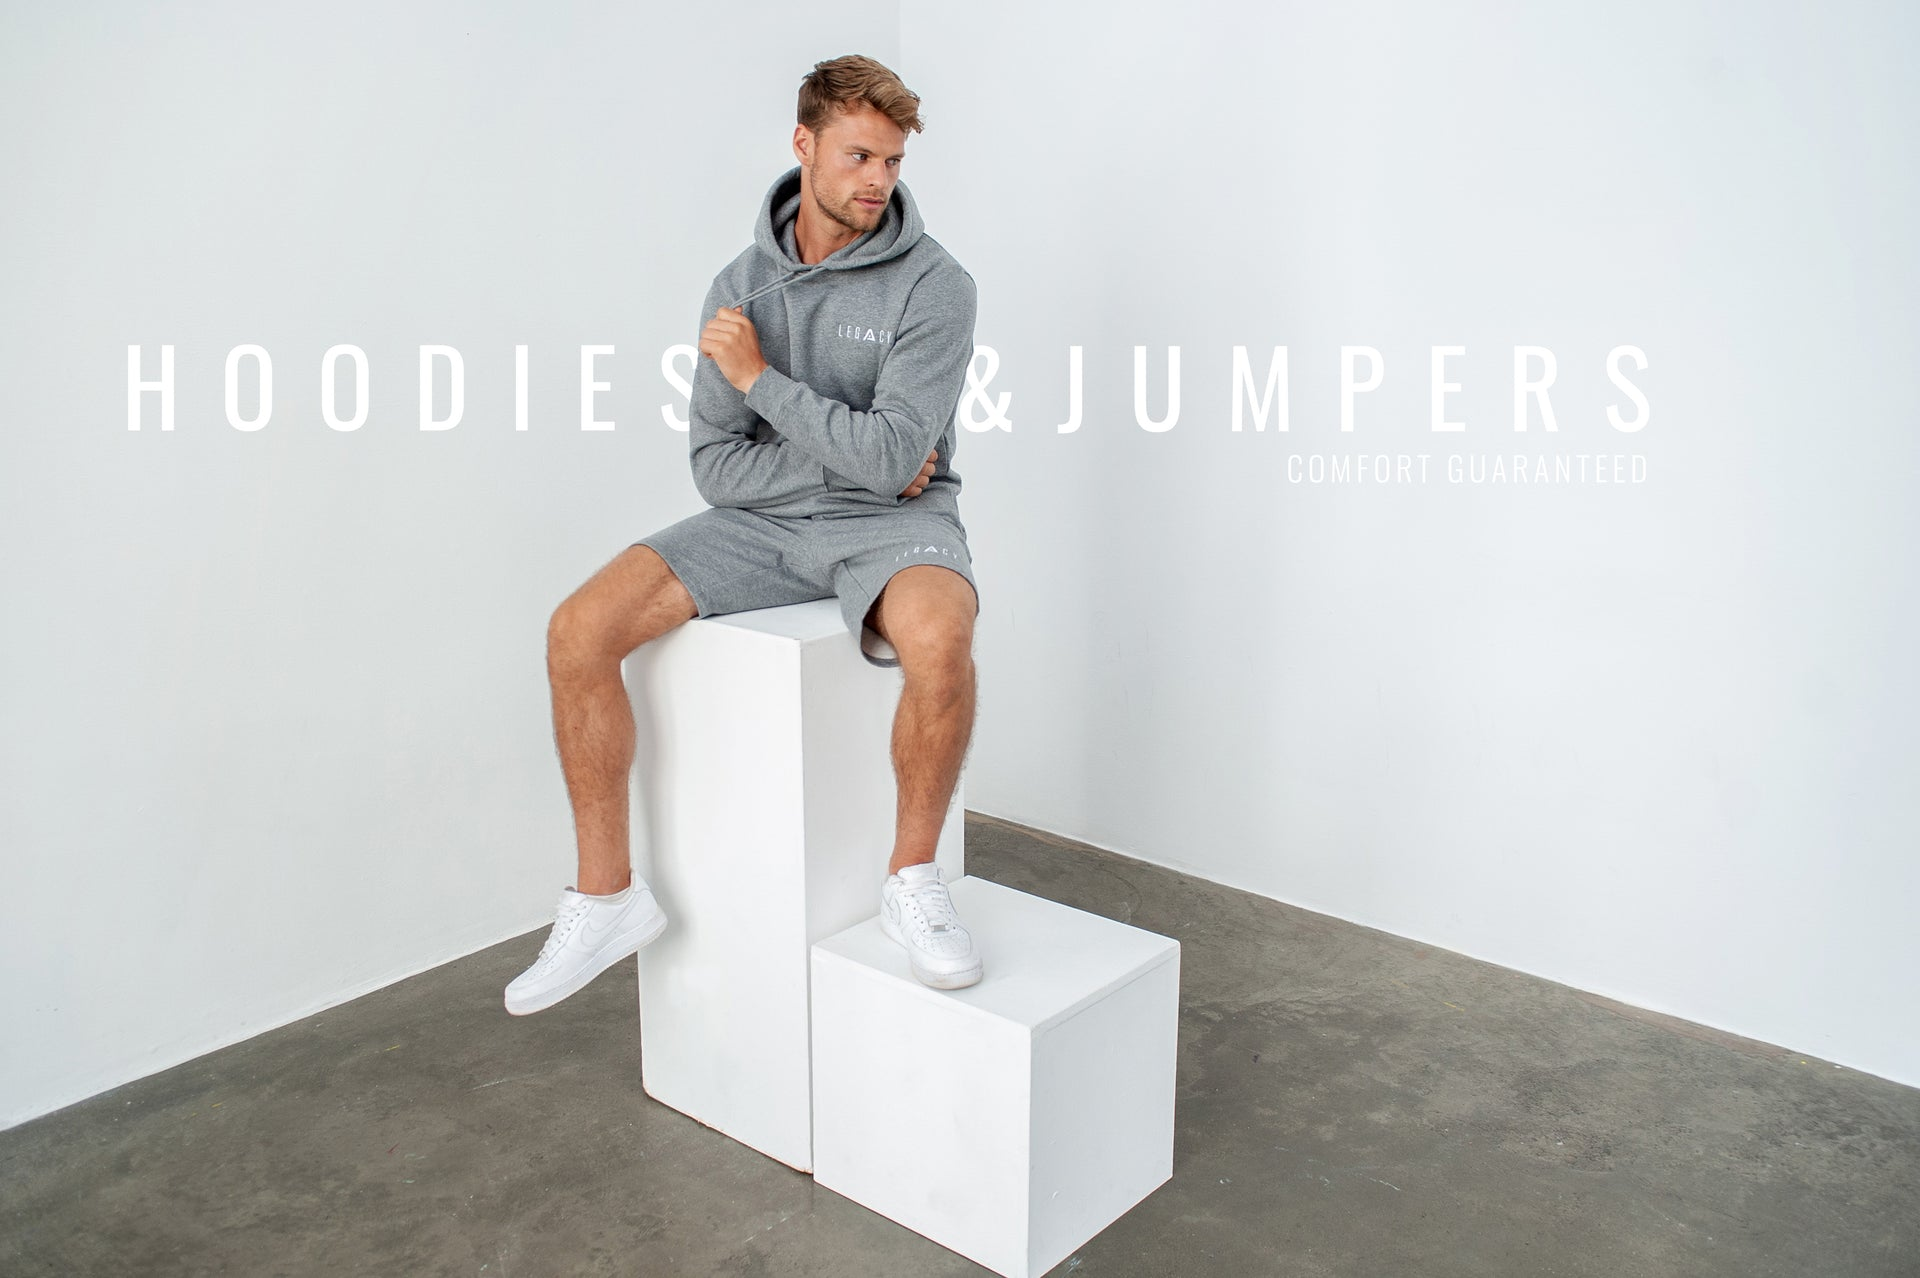 Men's Hoodies & Jumpers